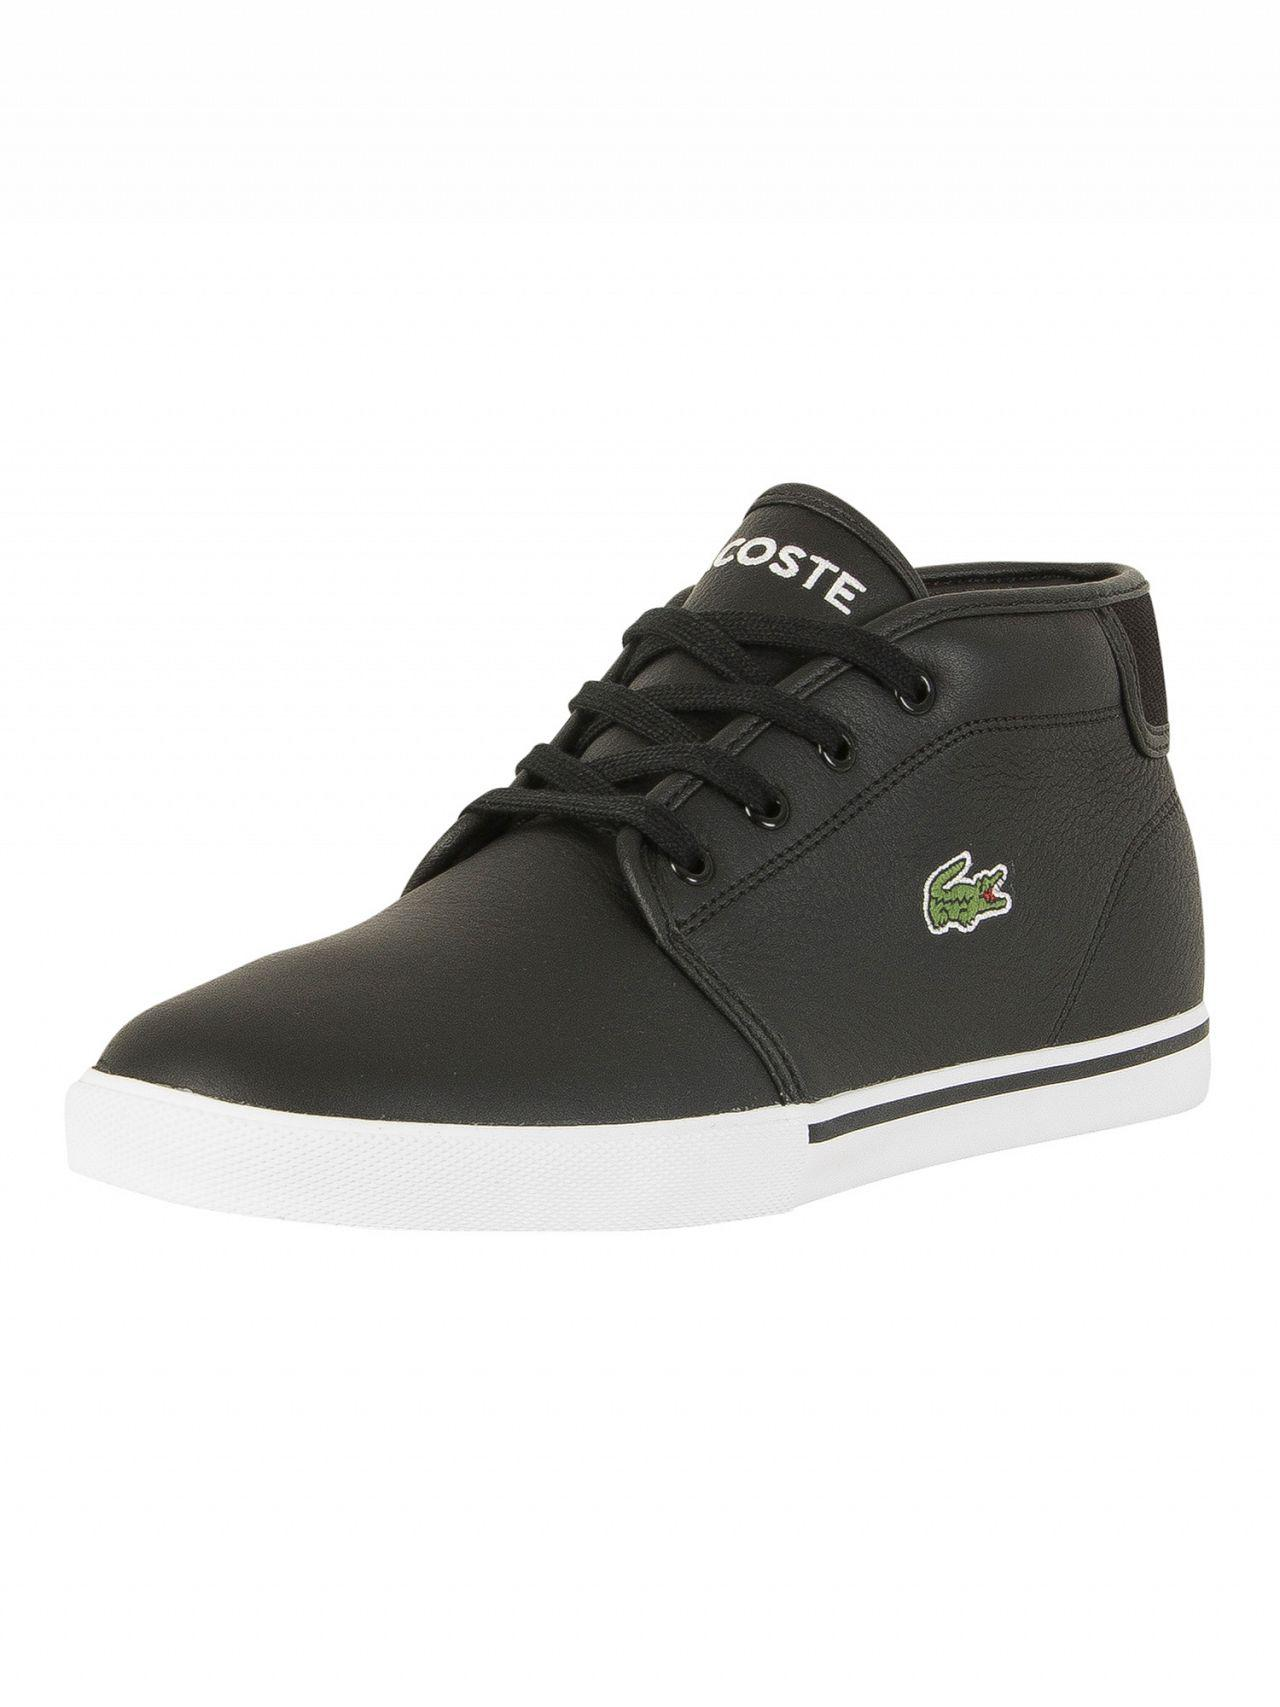 Ampthill Mid Trainers In Black - Black Lacoste pxbsp55S